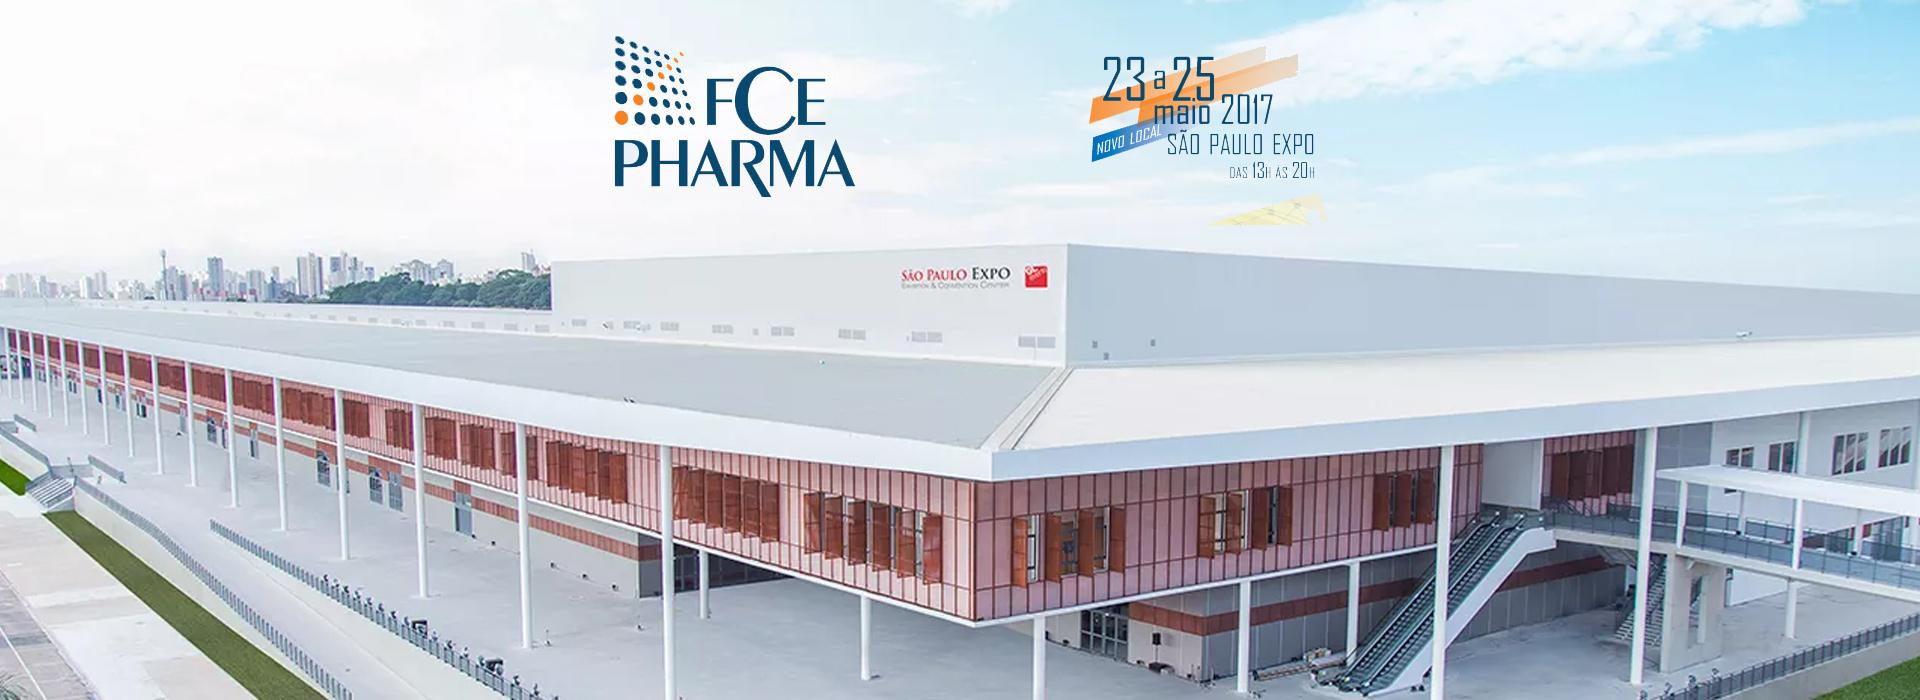 Estaremos presentes na FCE Pharma 2017!